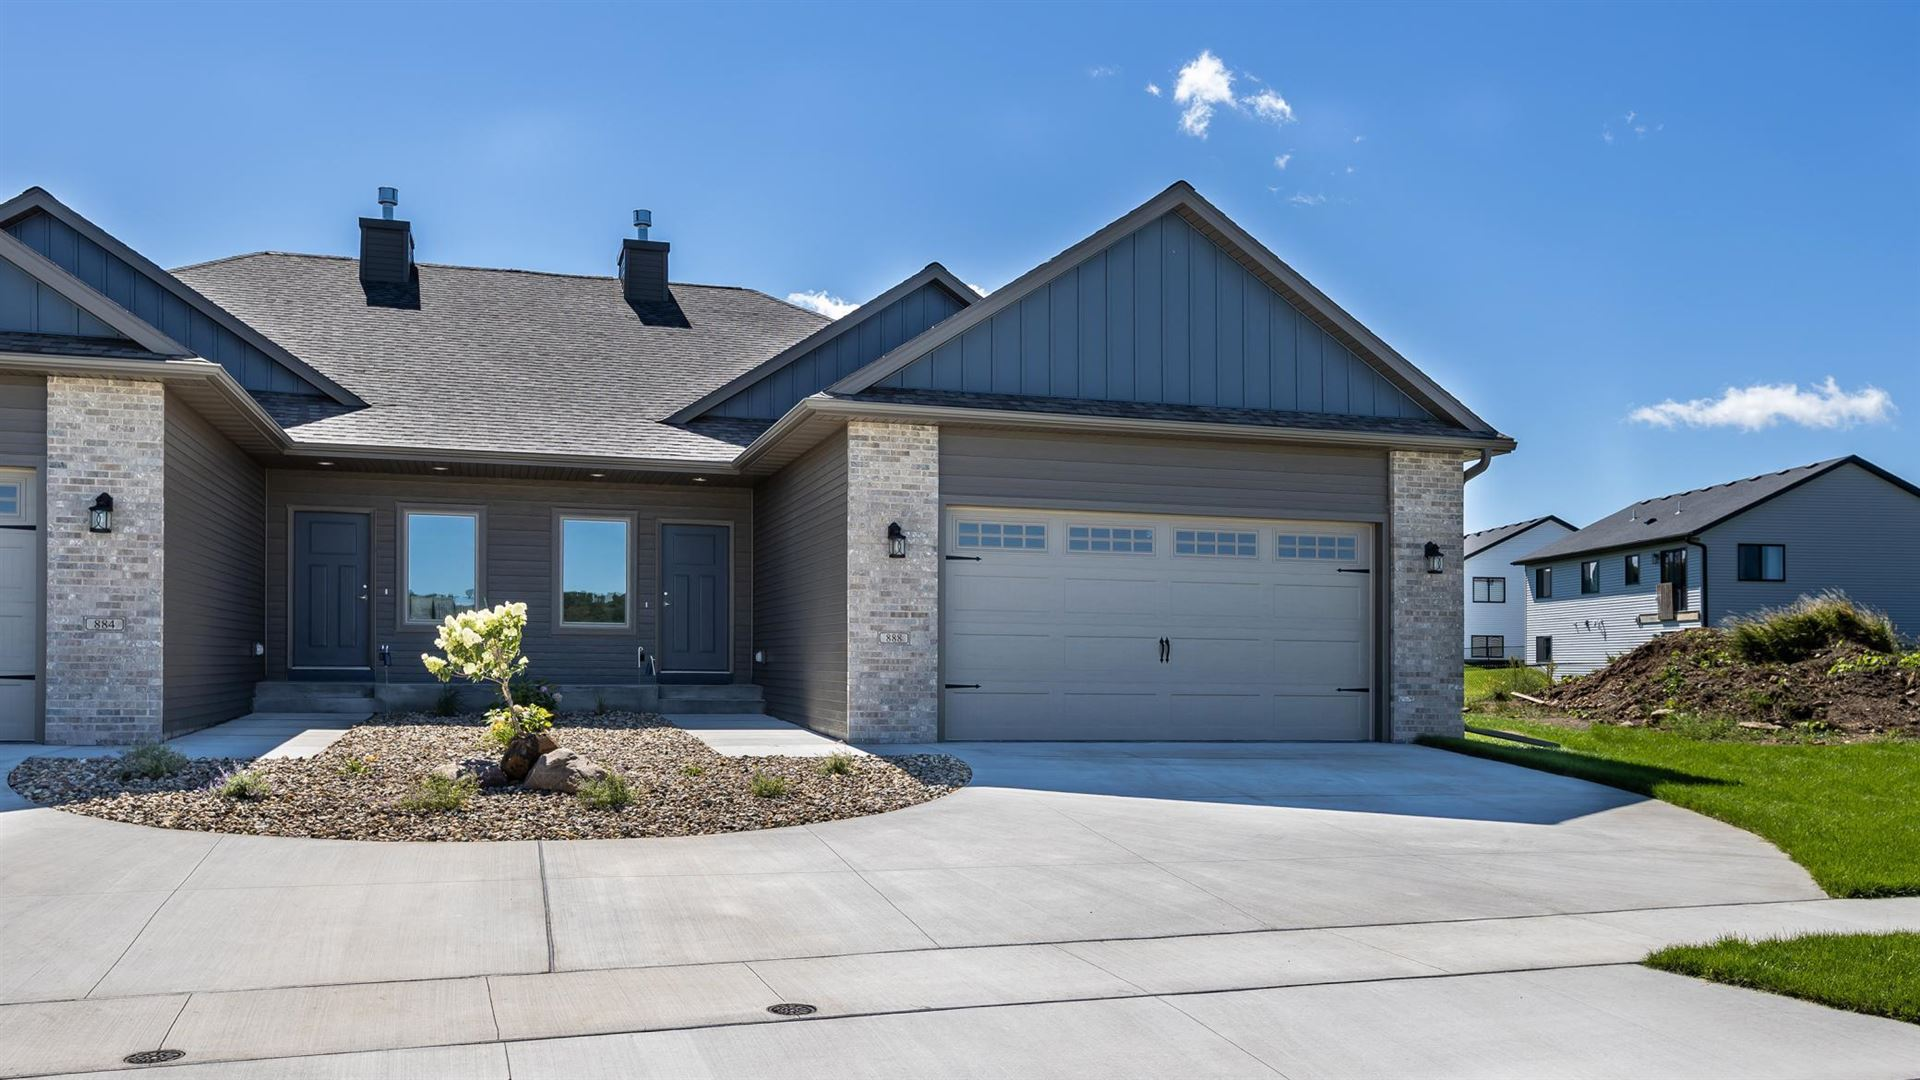 888 Picadilly Lane NW, Rochester, MN 55901 - MLS#: 5563261